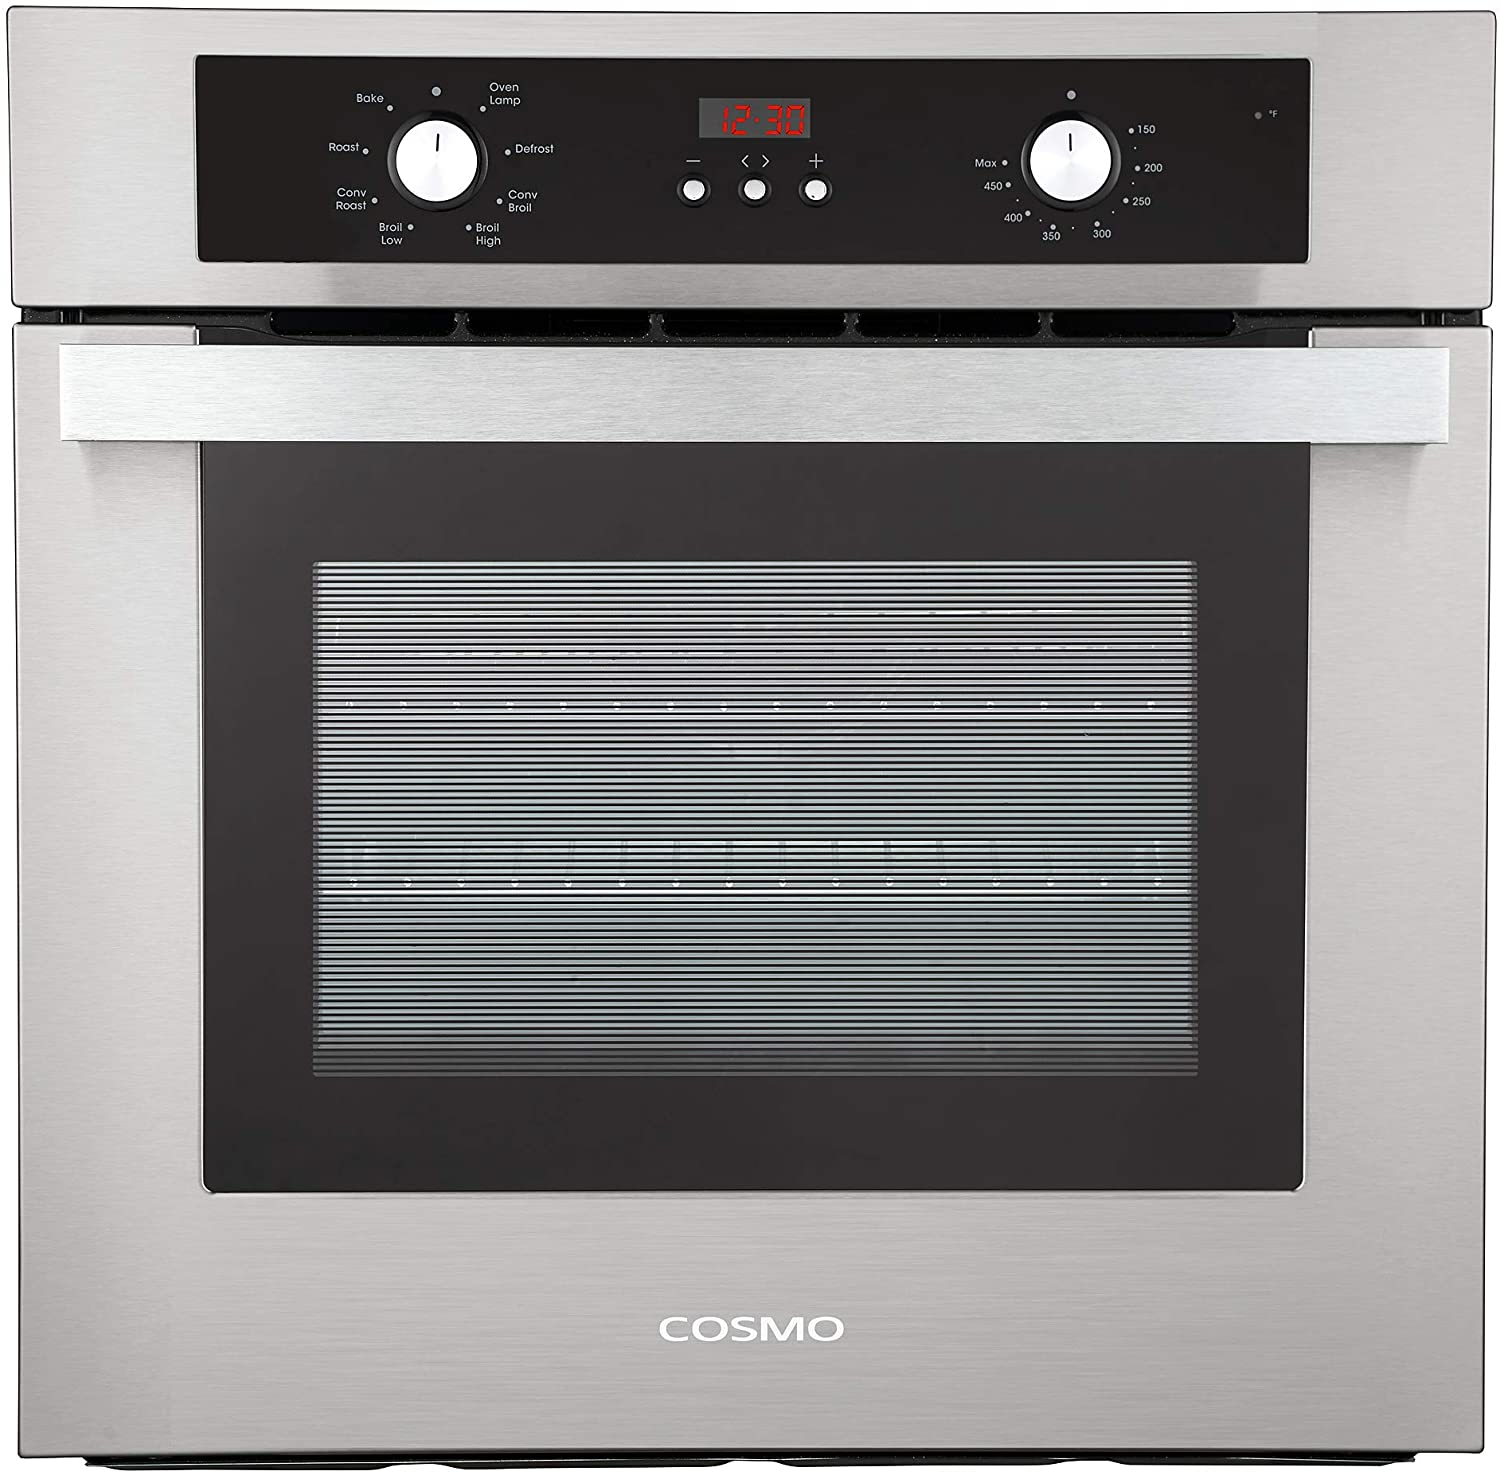 Cosmo C51EIX Electric Built-In Wall Oven cu. All items in the store 2.5 ft. with outlet Capaci